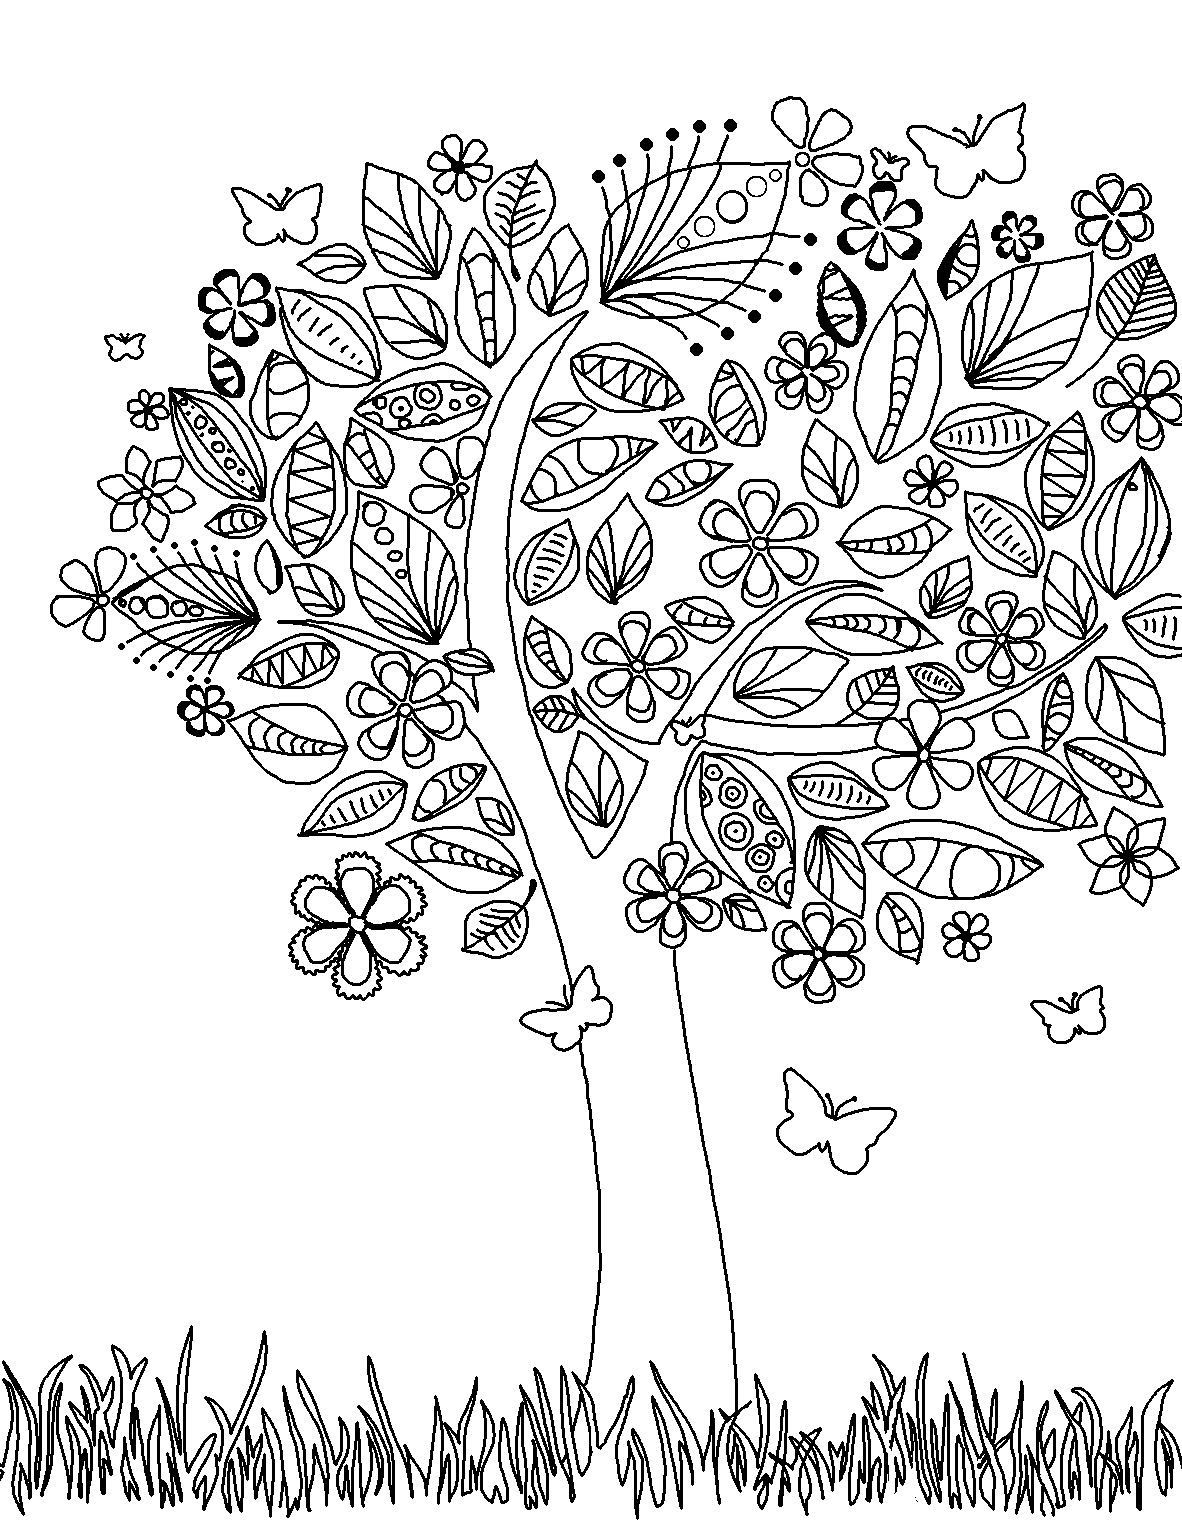 Free Adult Coloring Pages - My Frugal Adventures